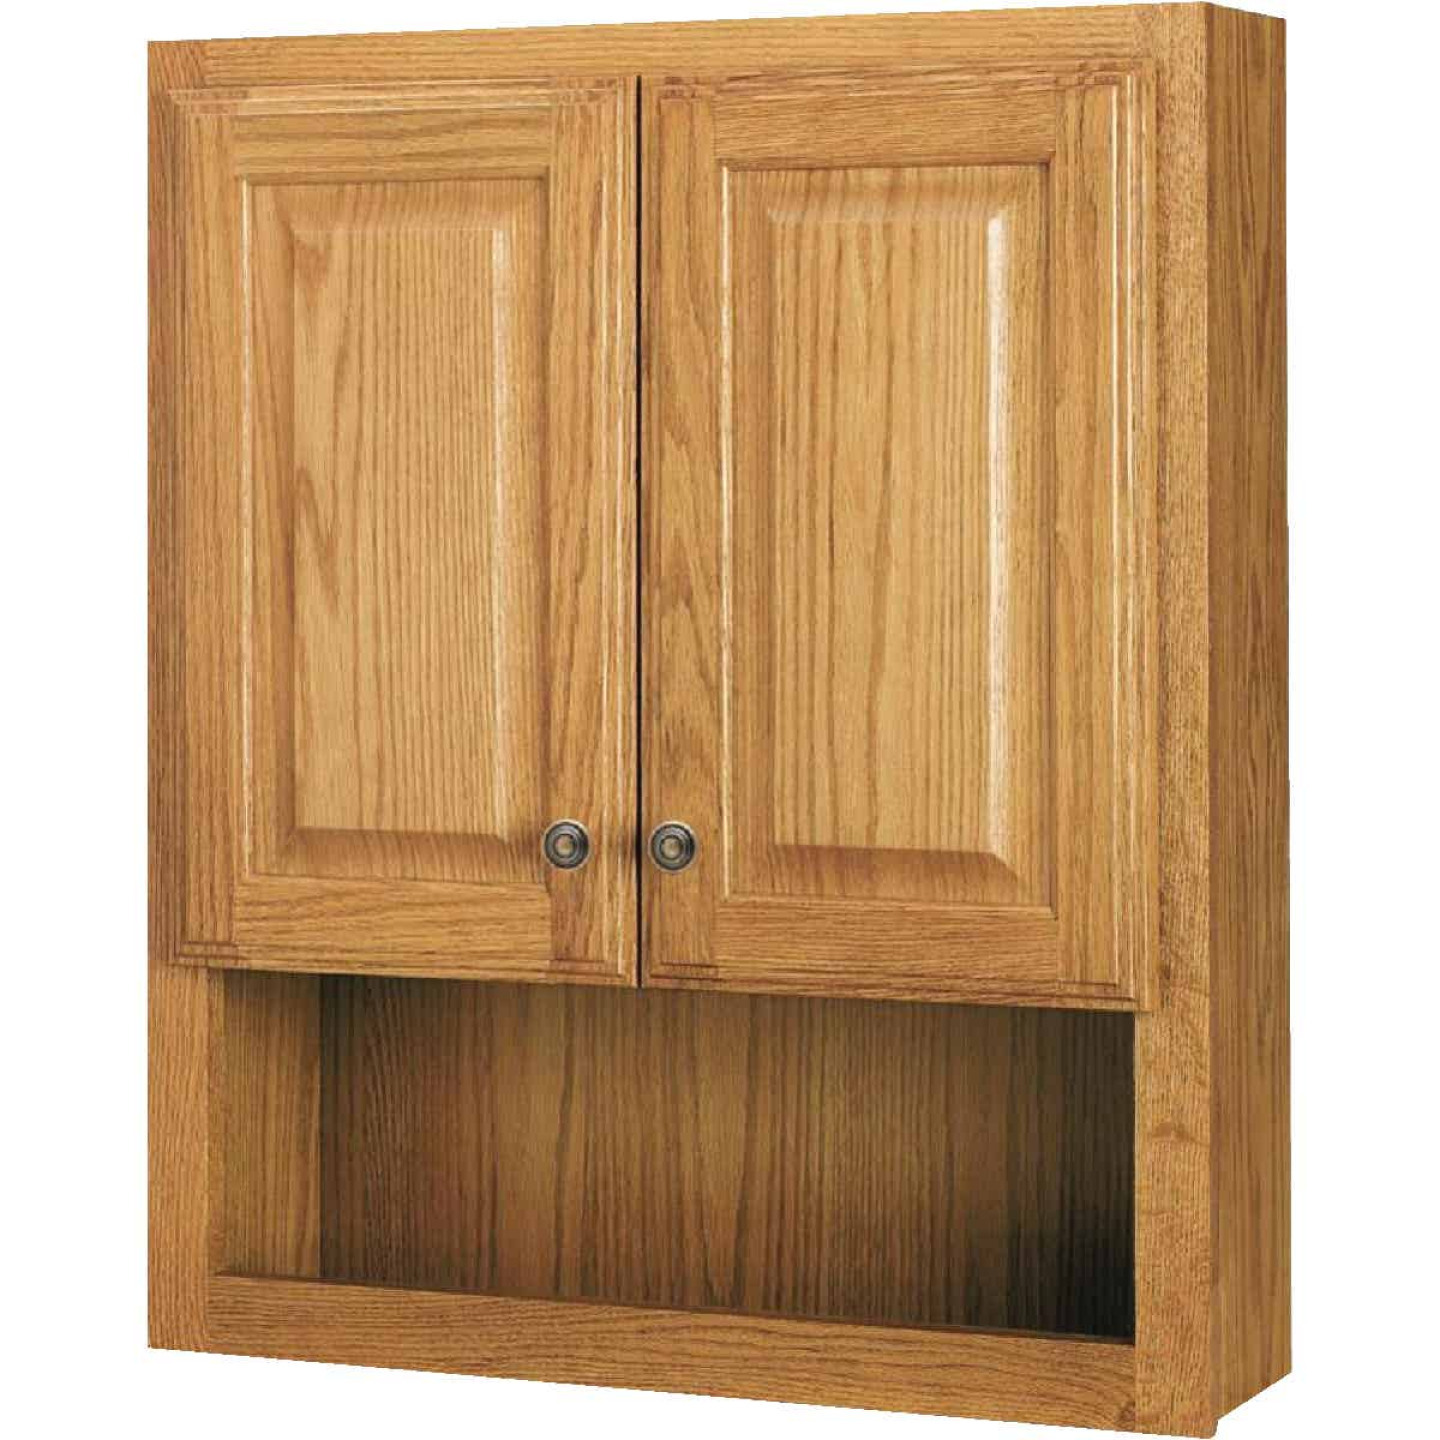 Continental Cabinets Modular Honey Oak Finish 23-1/4 In. W. x 28 In. H. x 7-1/4 In. D. Wood Wall Bath Cabinet Image 3